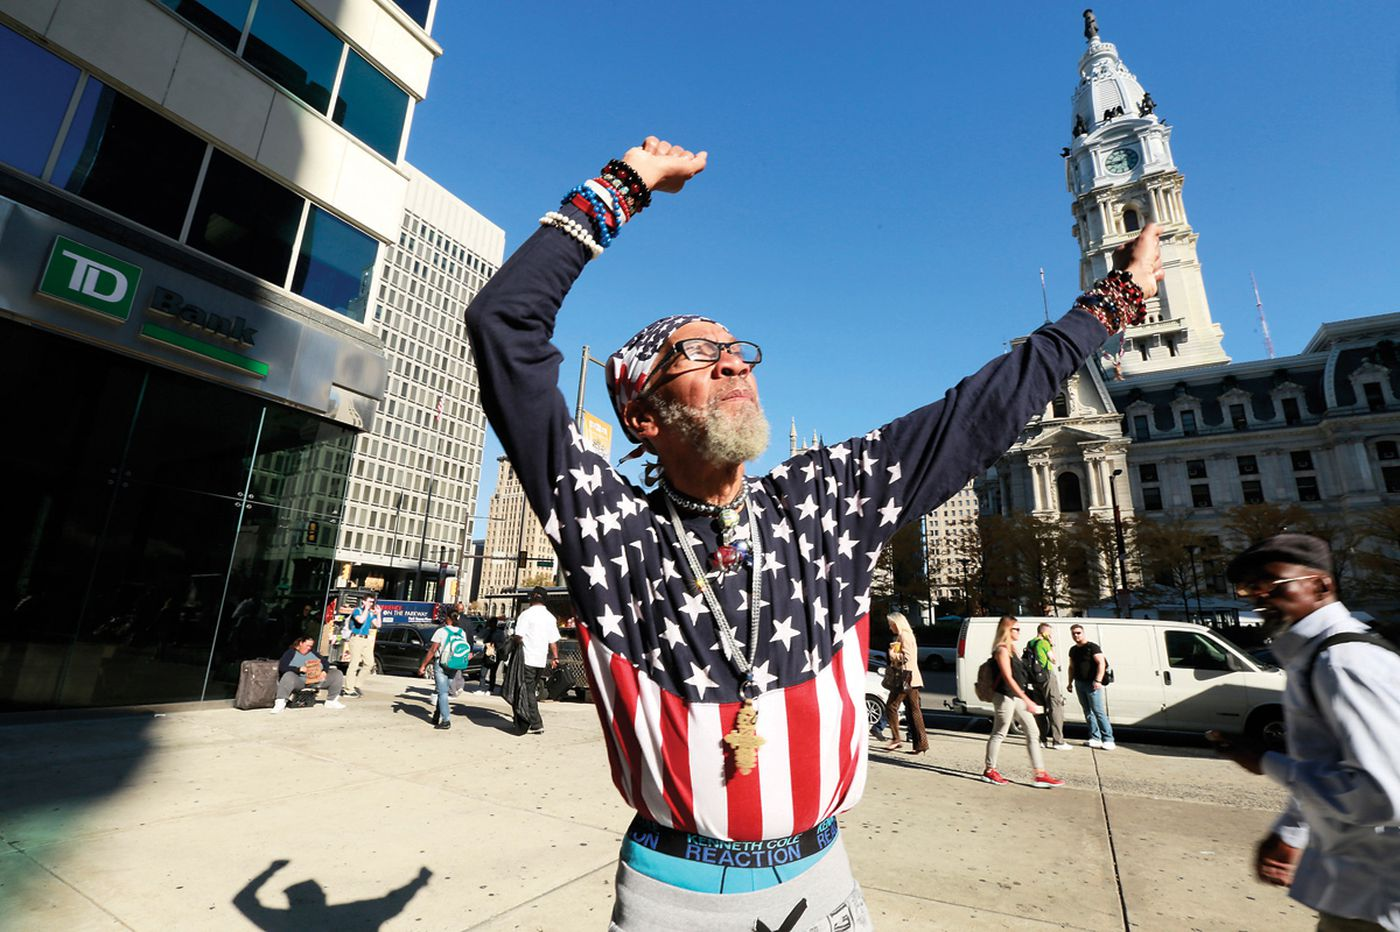 At 70, South Philly man makes street dancing an ageless art